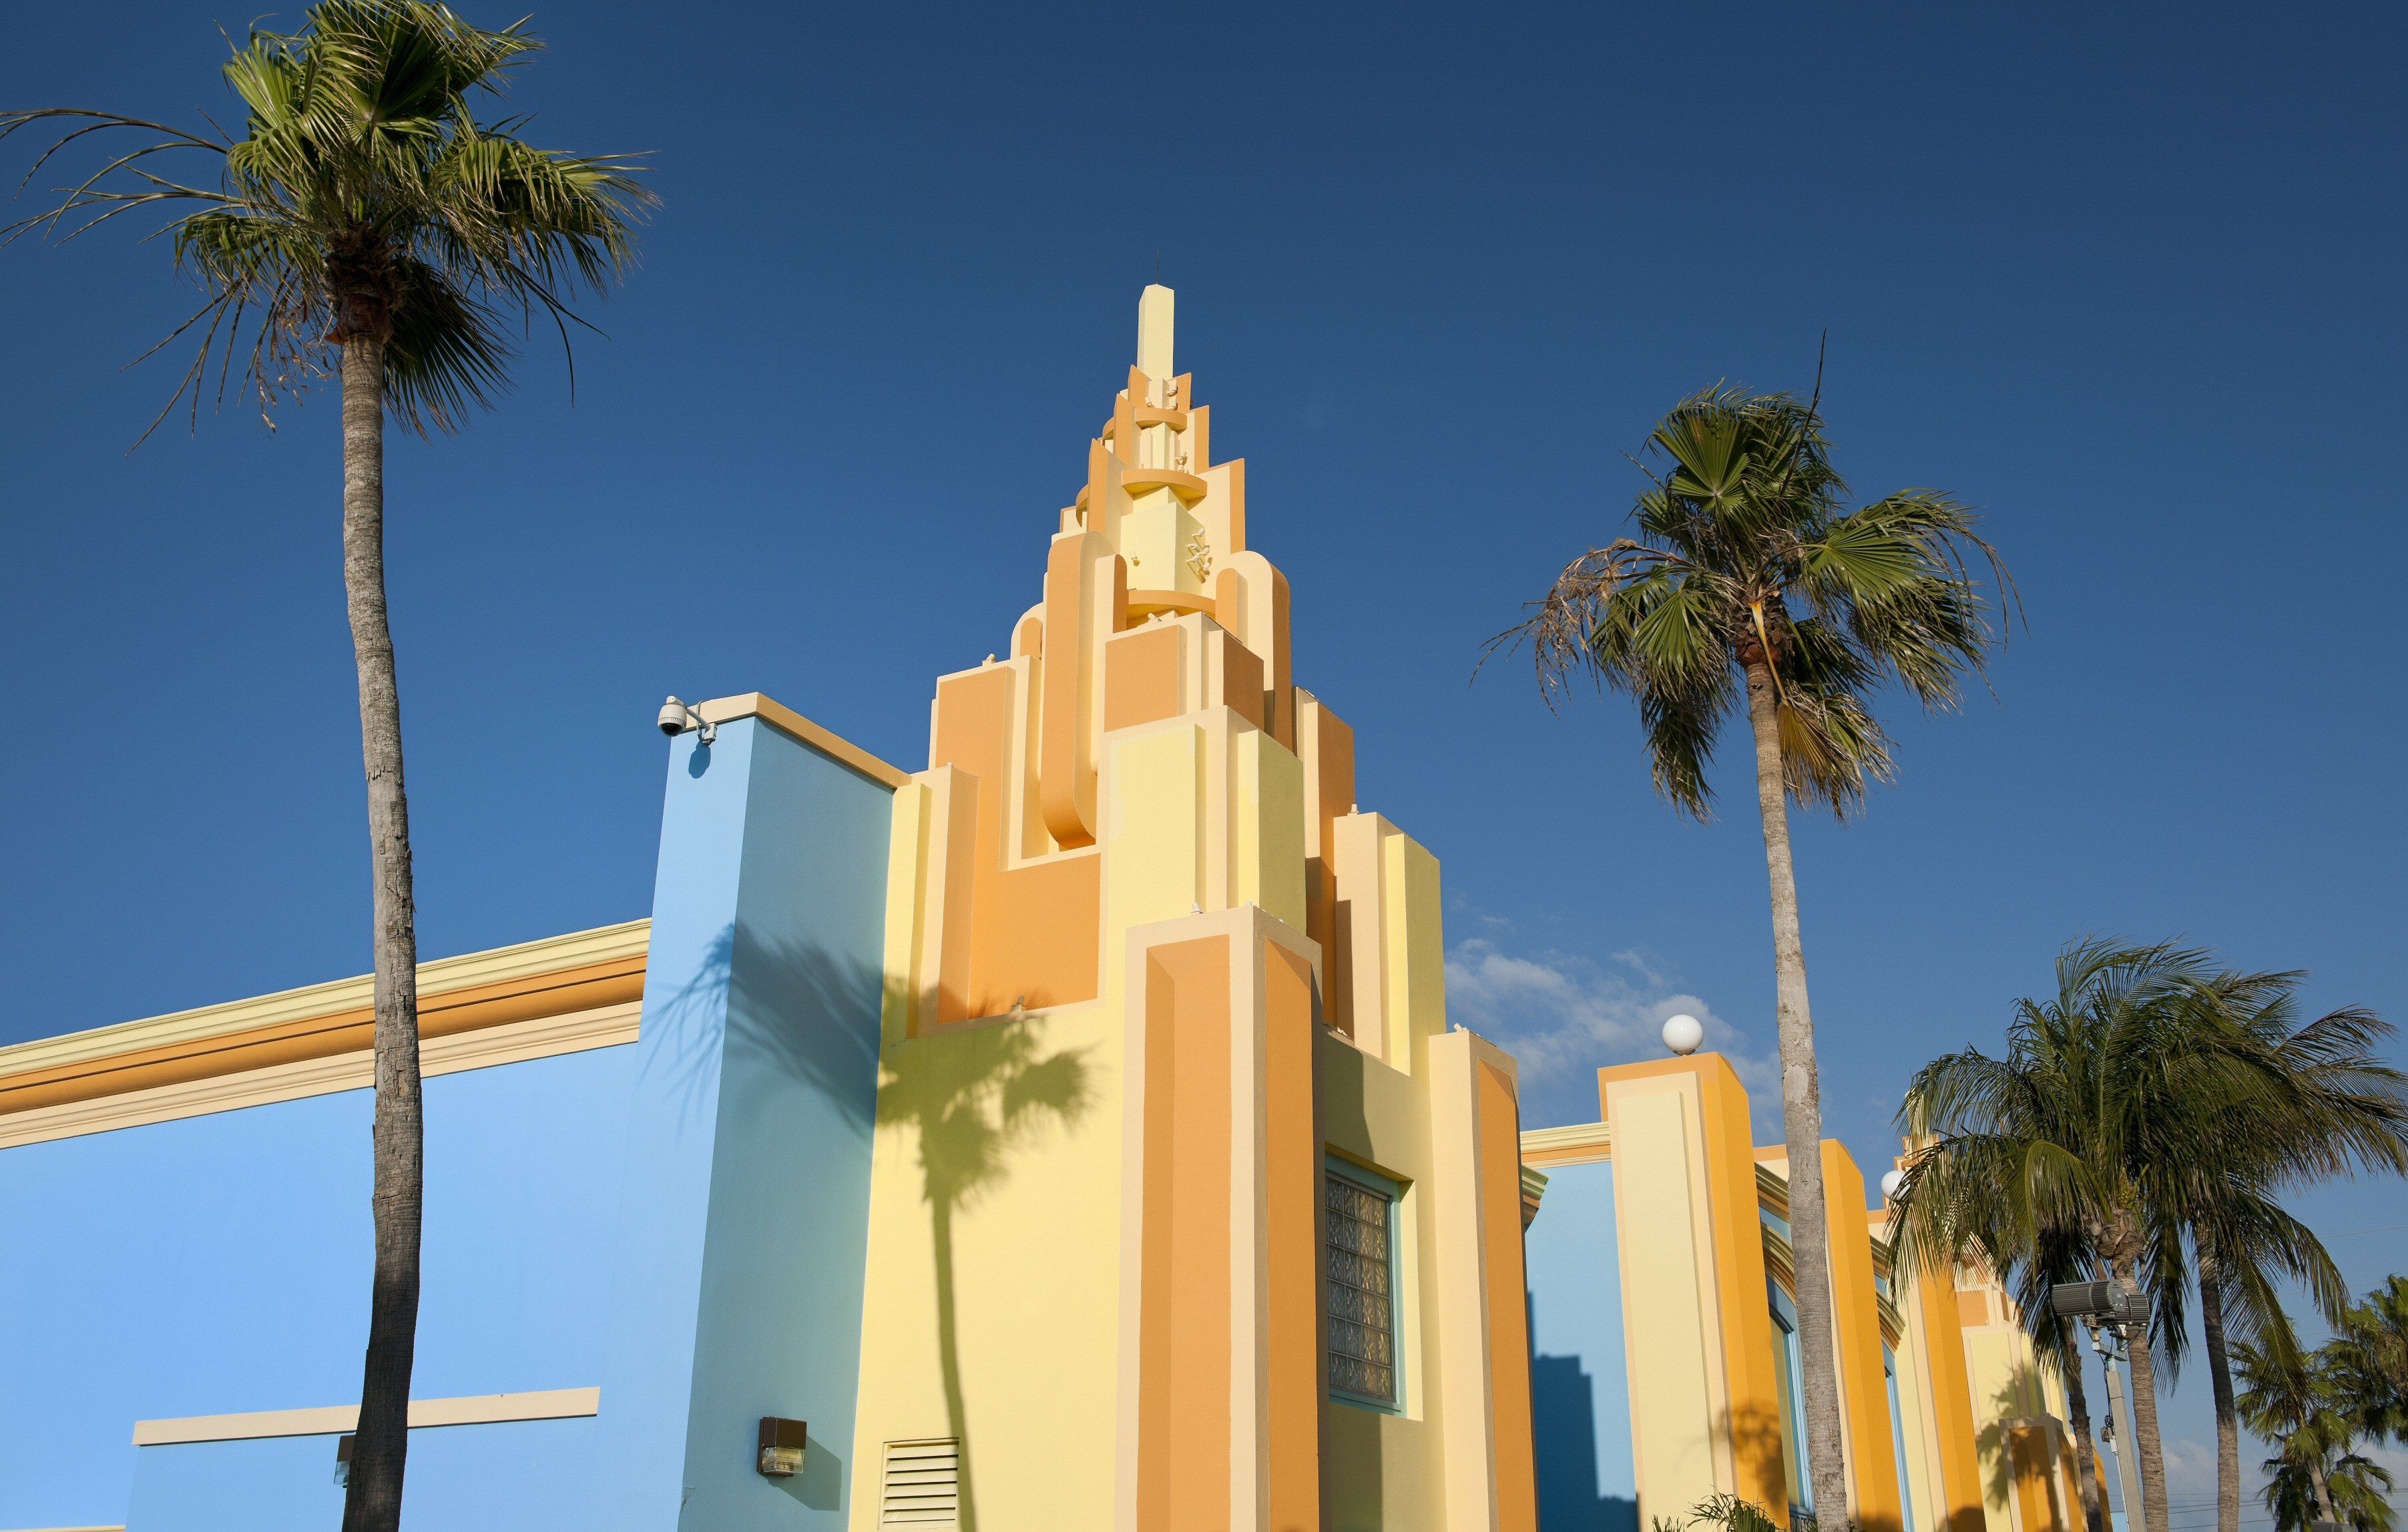 Colorful painted Art Deco houses in Miami, Florida